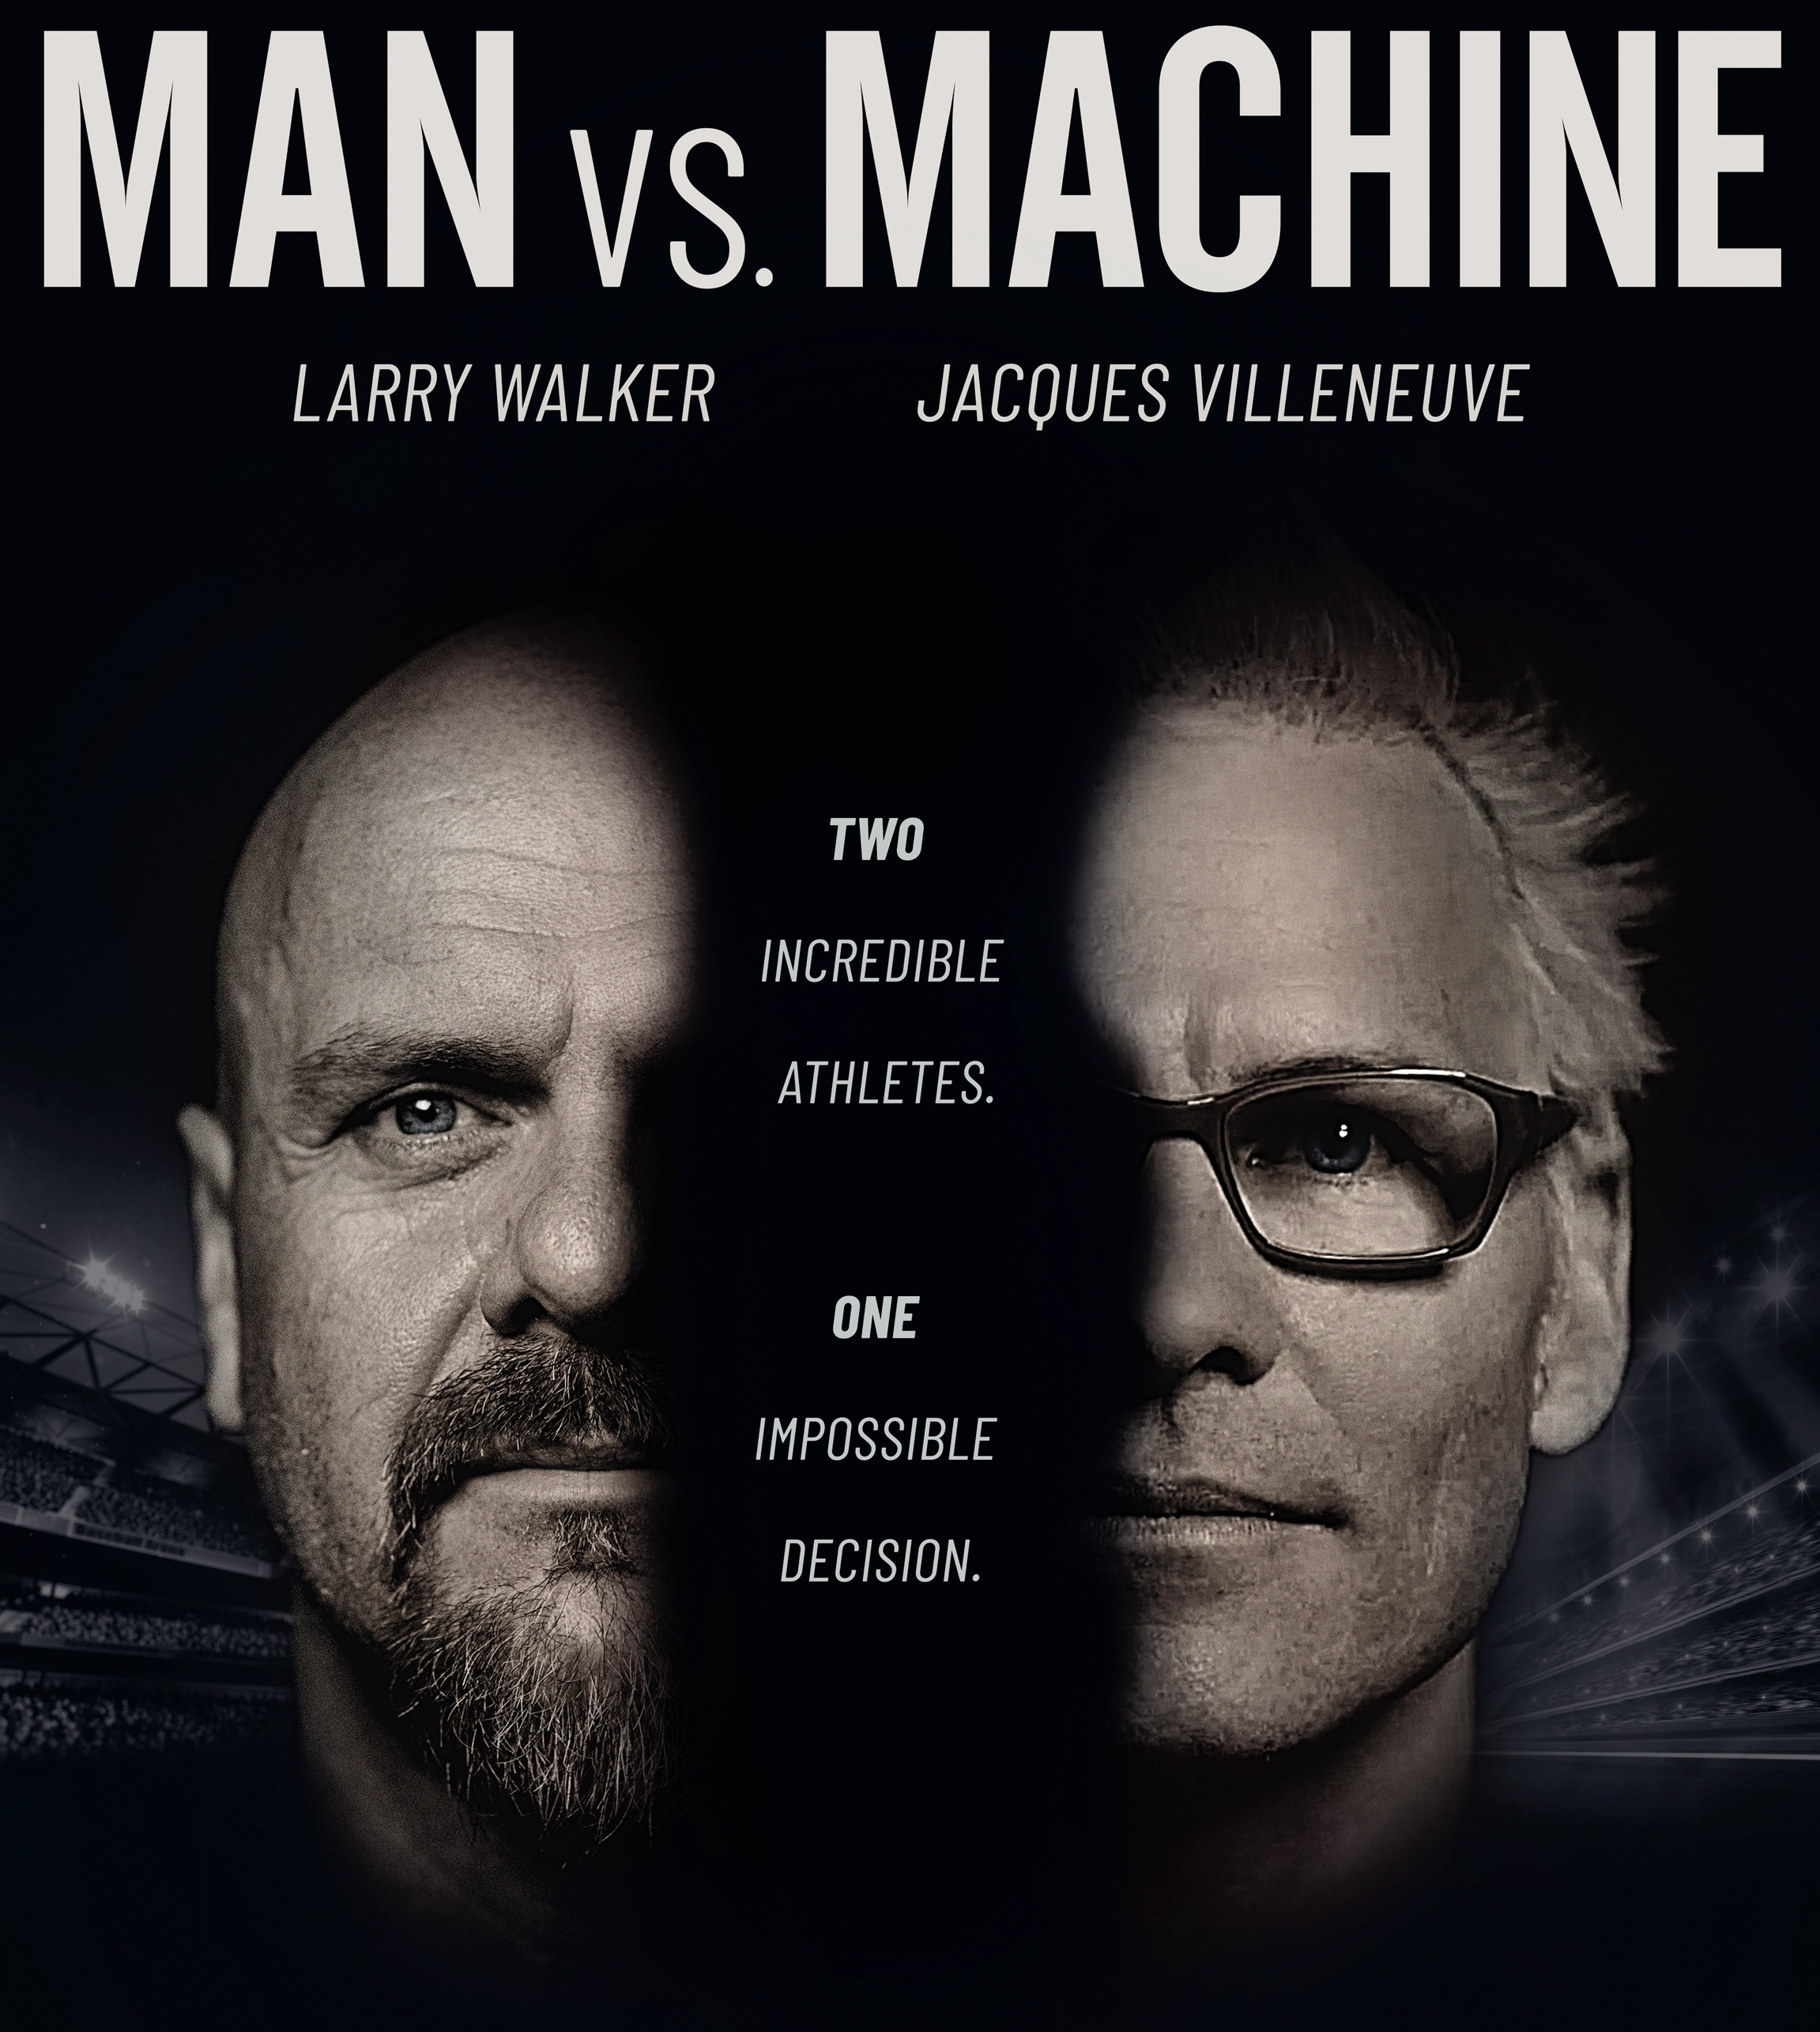 EPIC-manvsmachine-finalpressready40x27.jpg